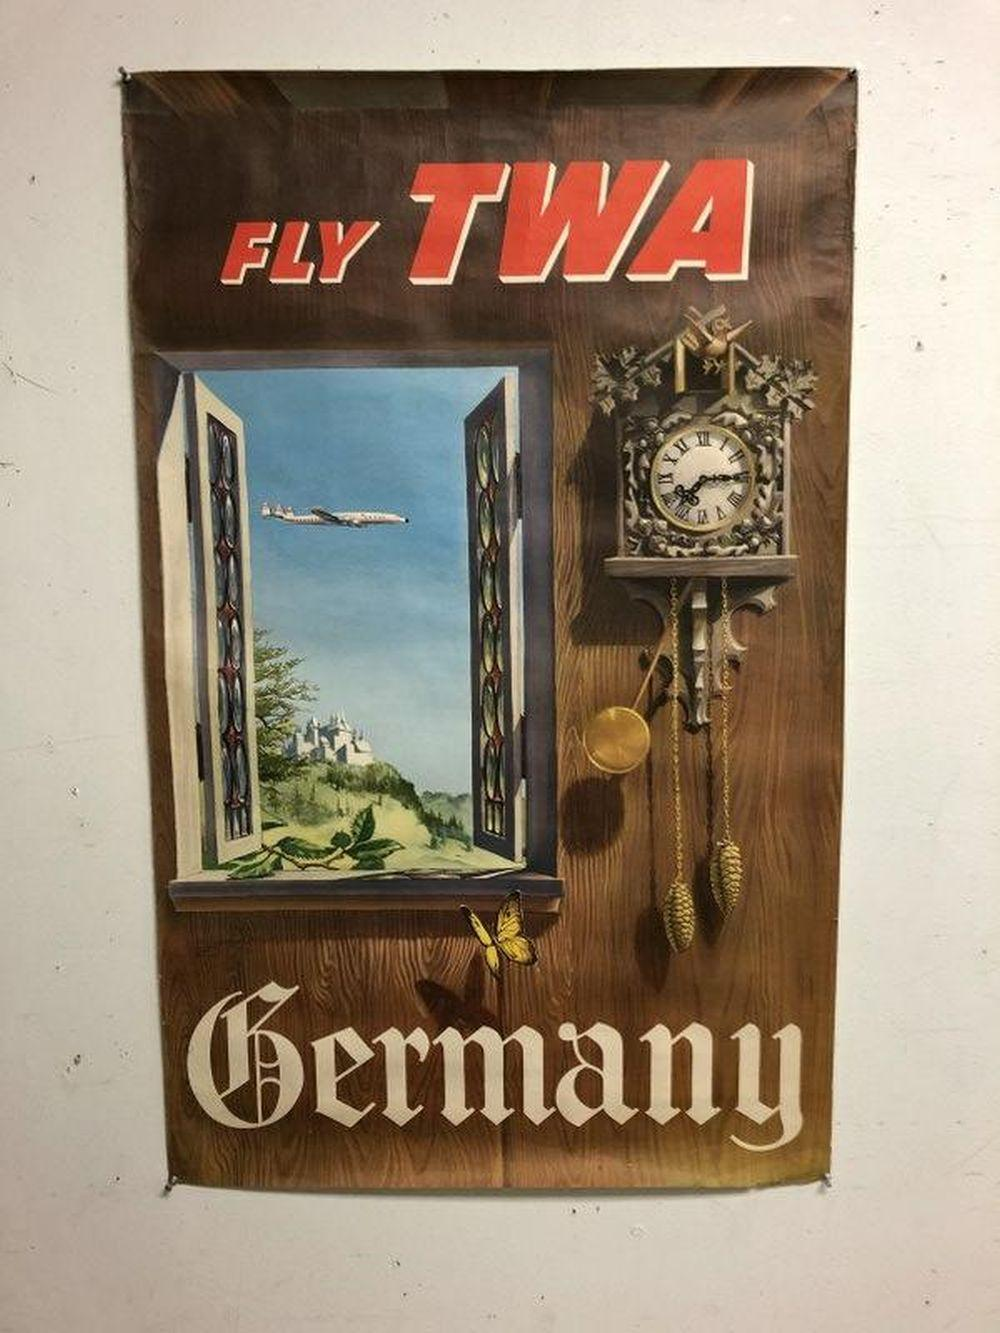 FLY TWA GERMANY, 1950